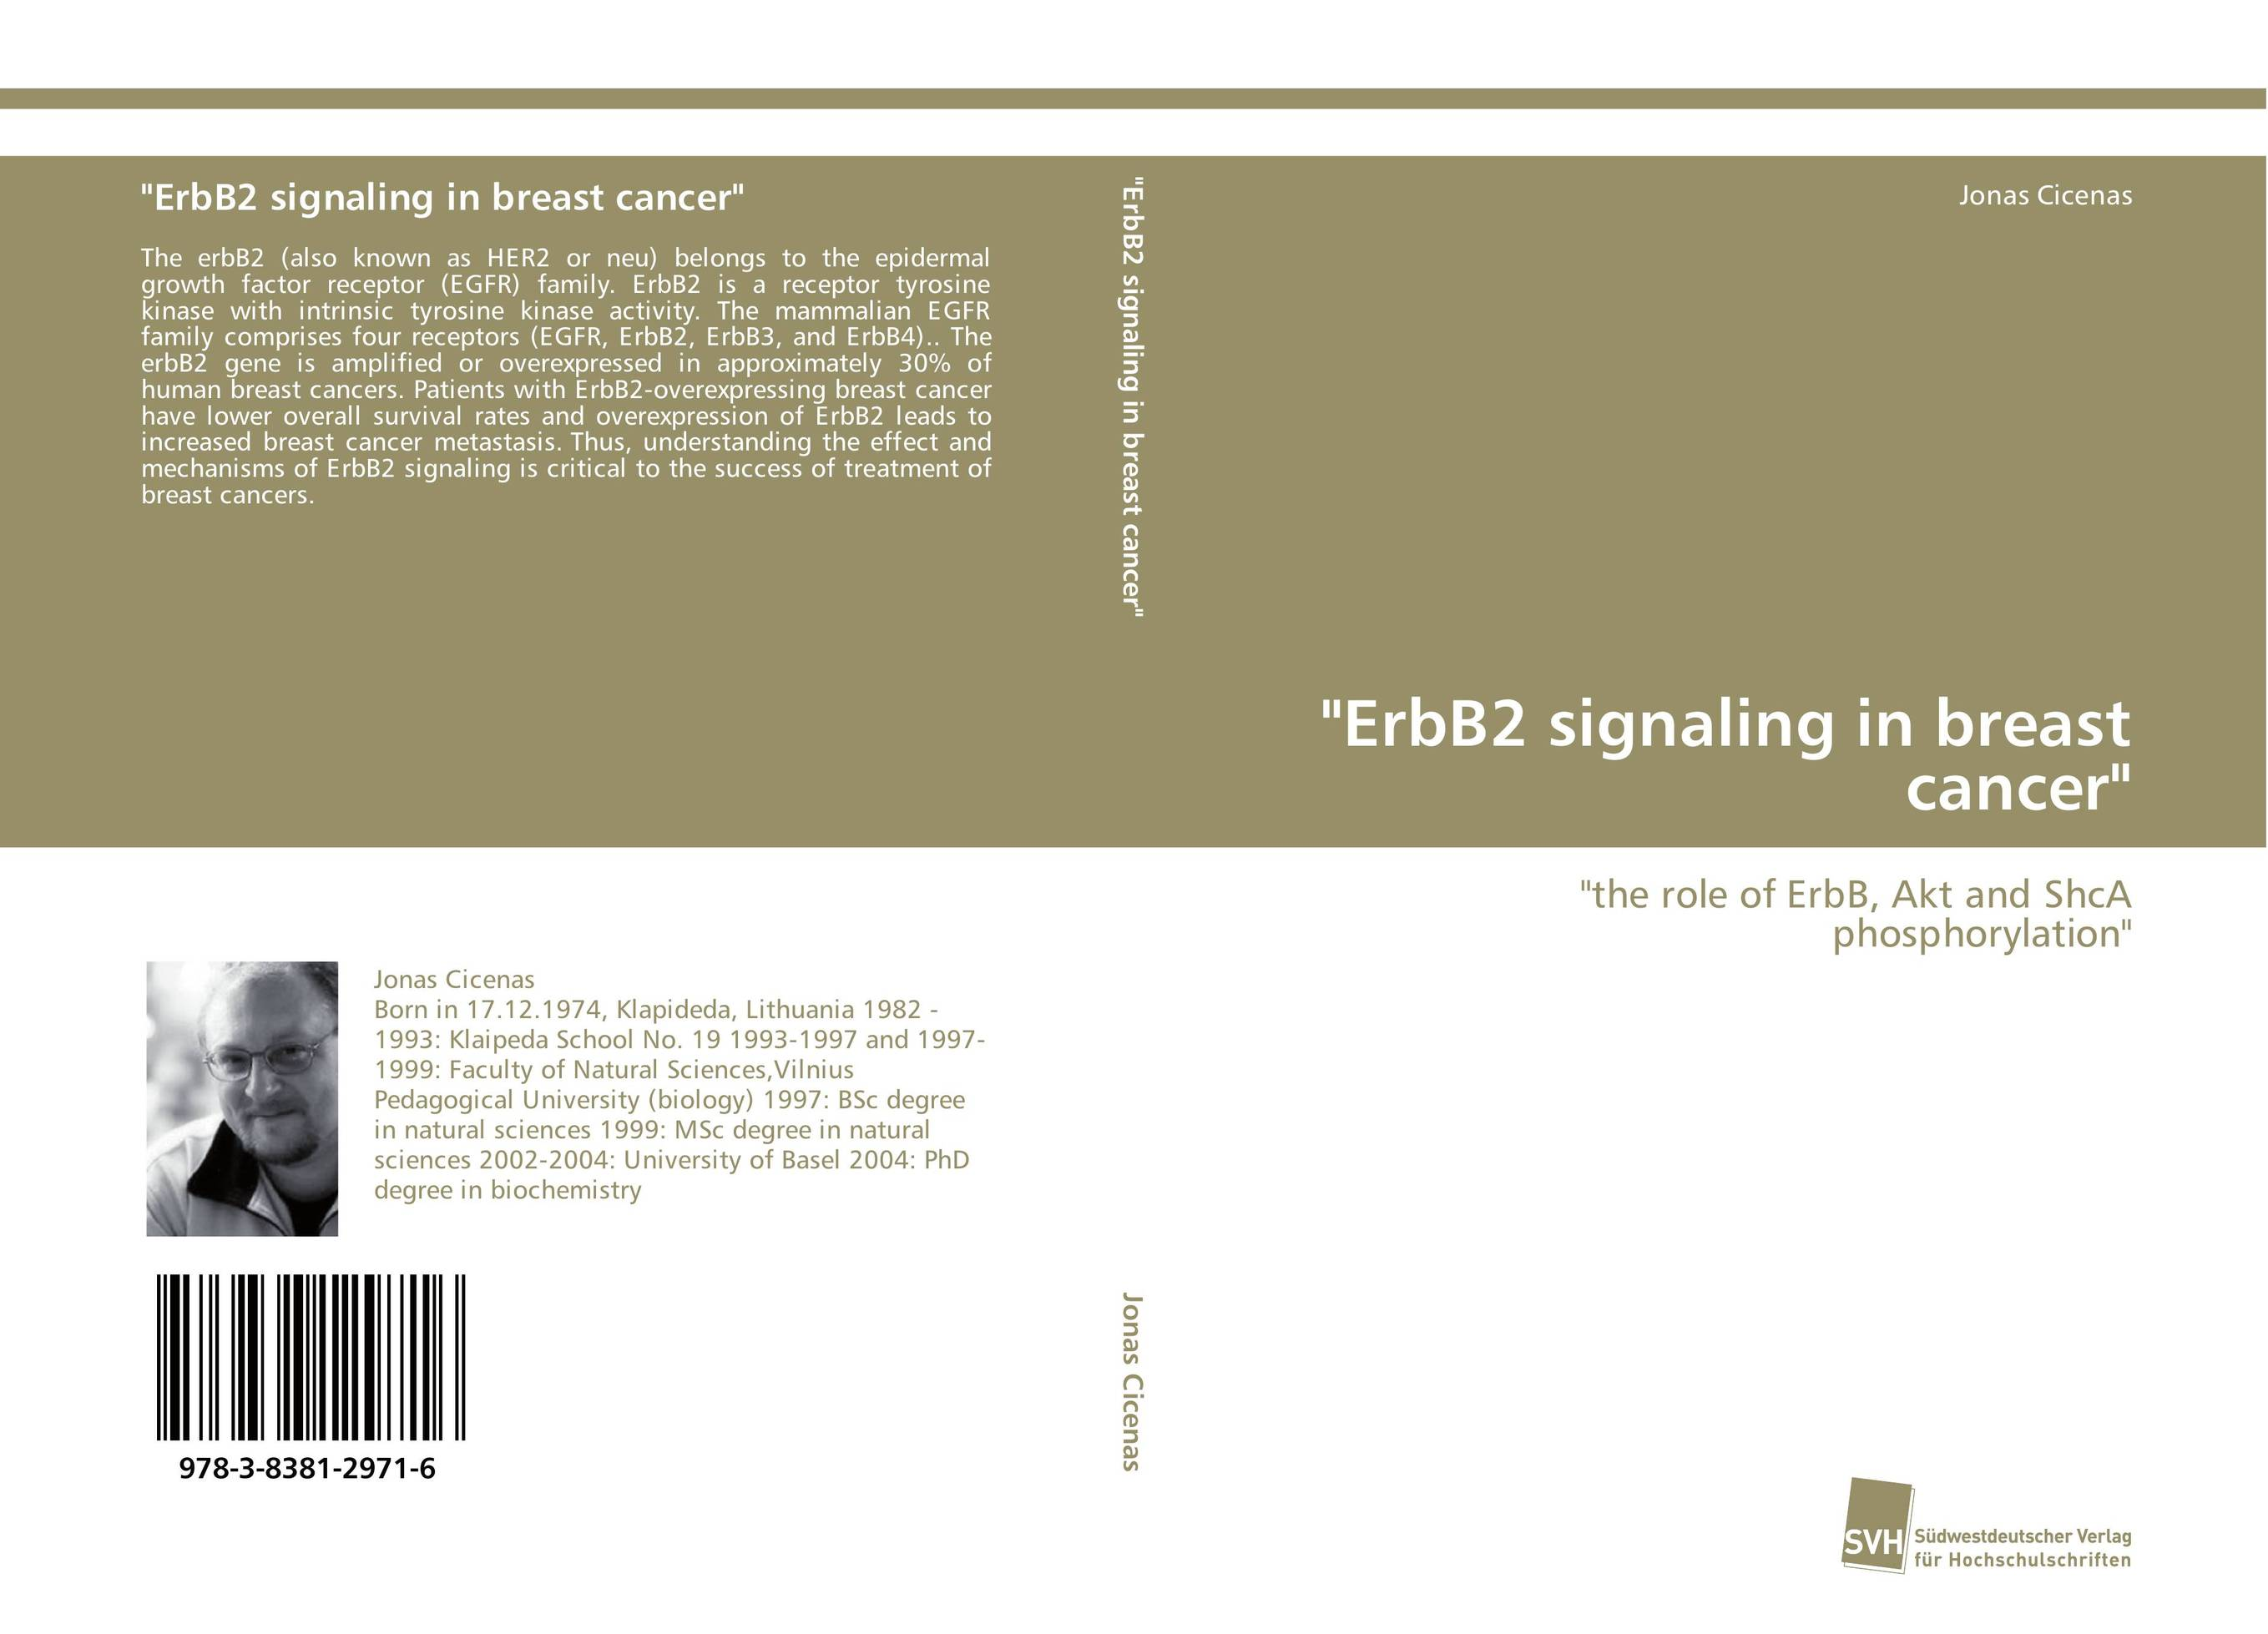 ErbB2 signaling in breast cancer 406 948 41 13 40